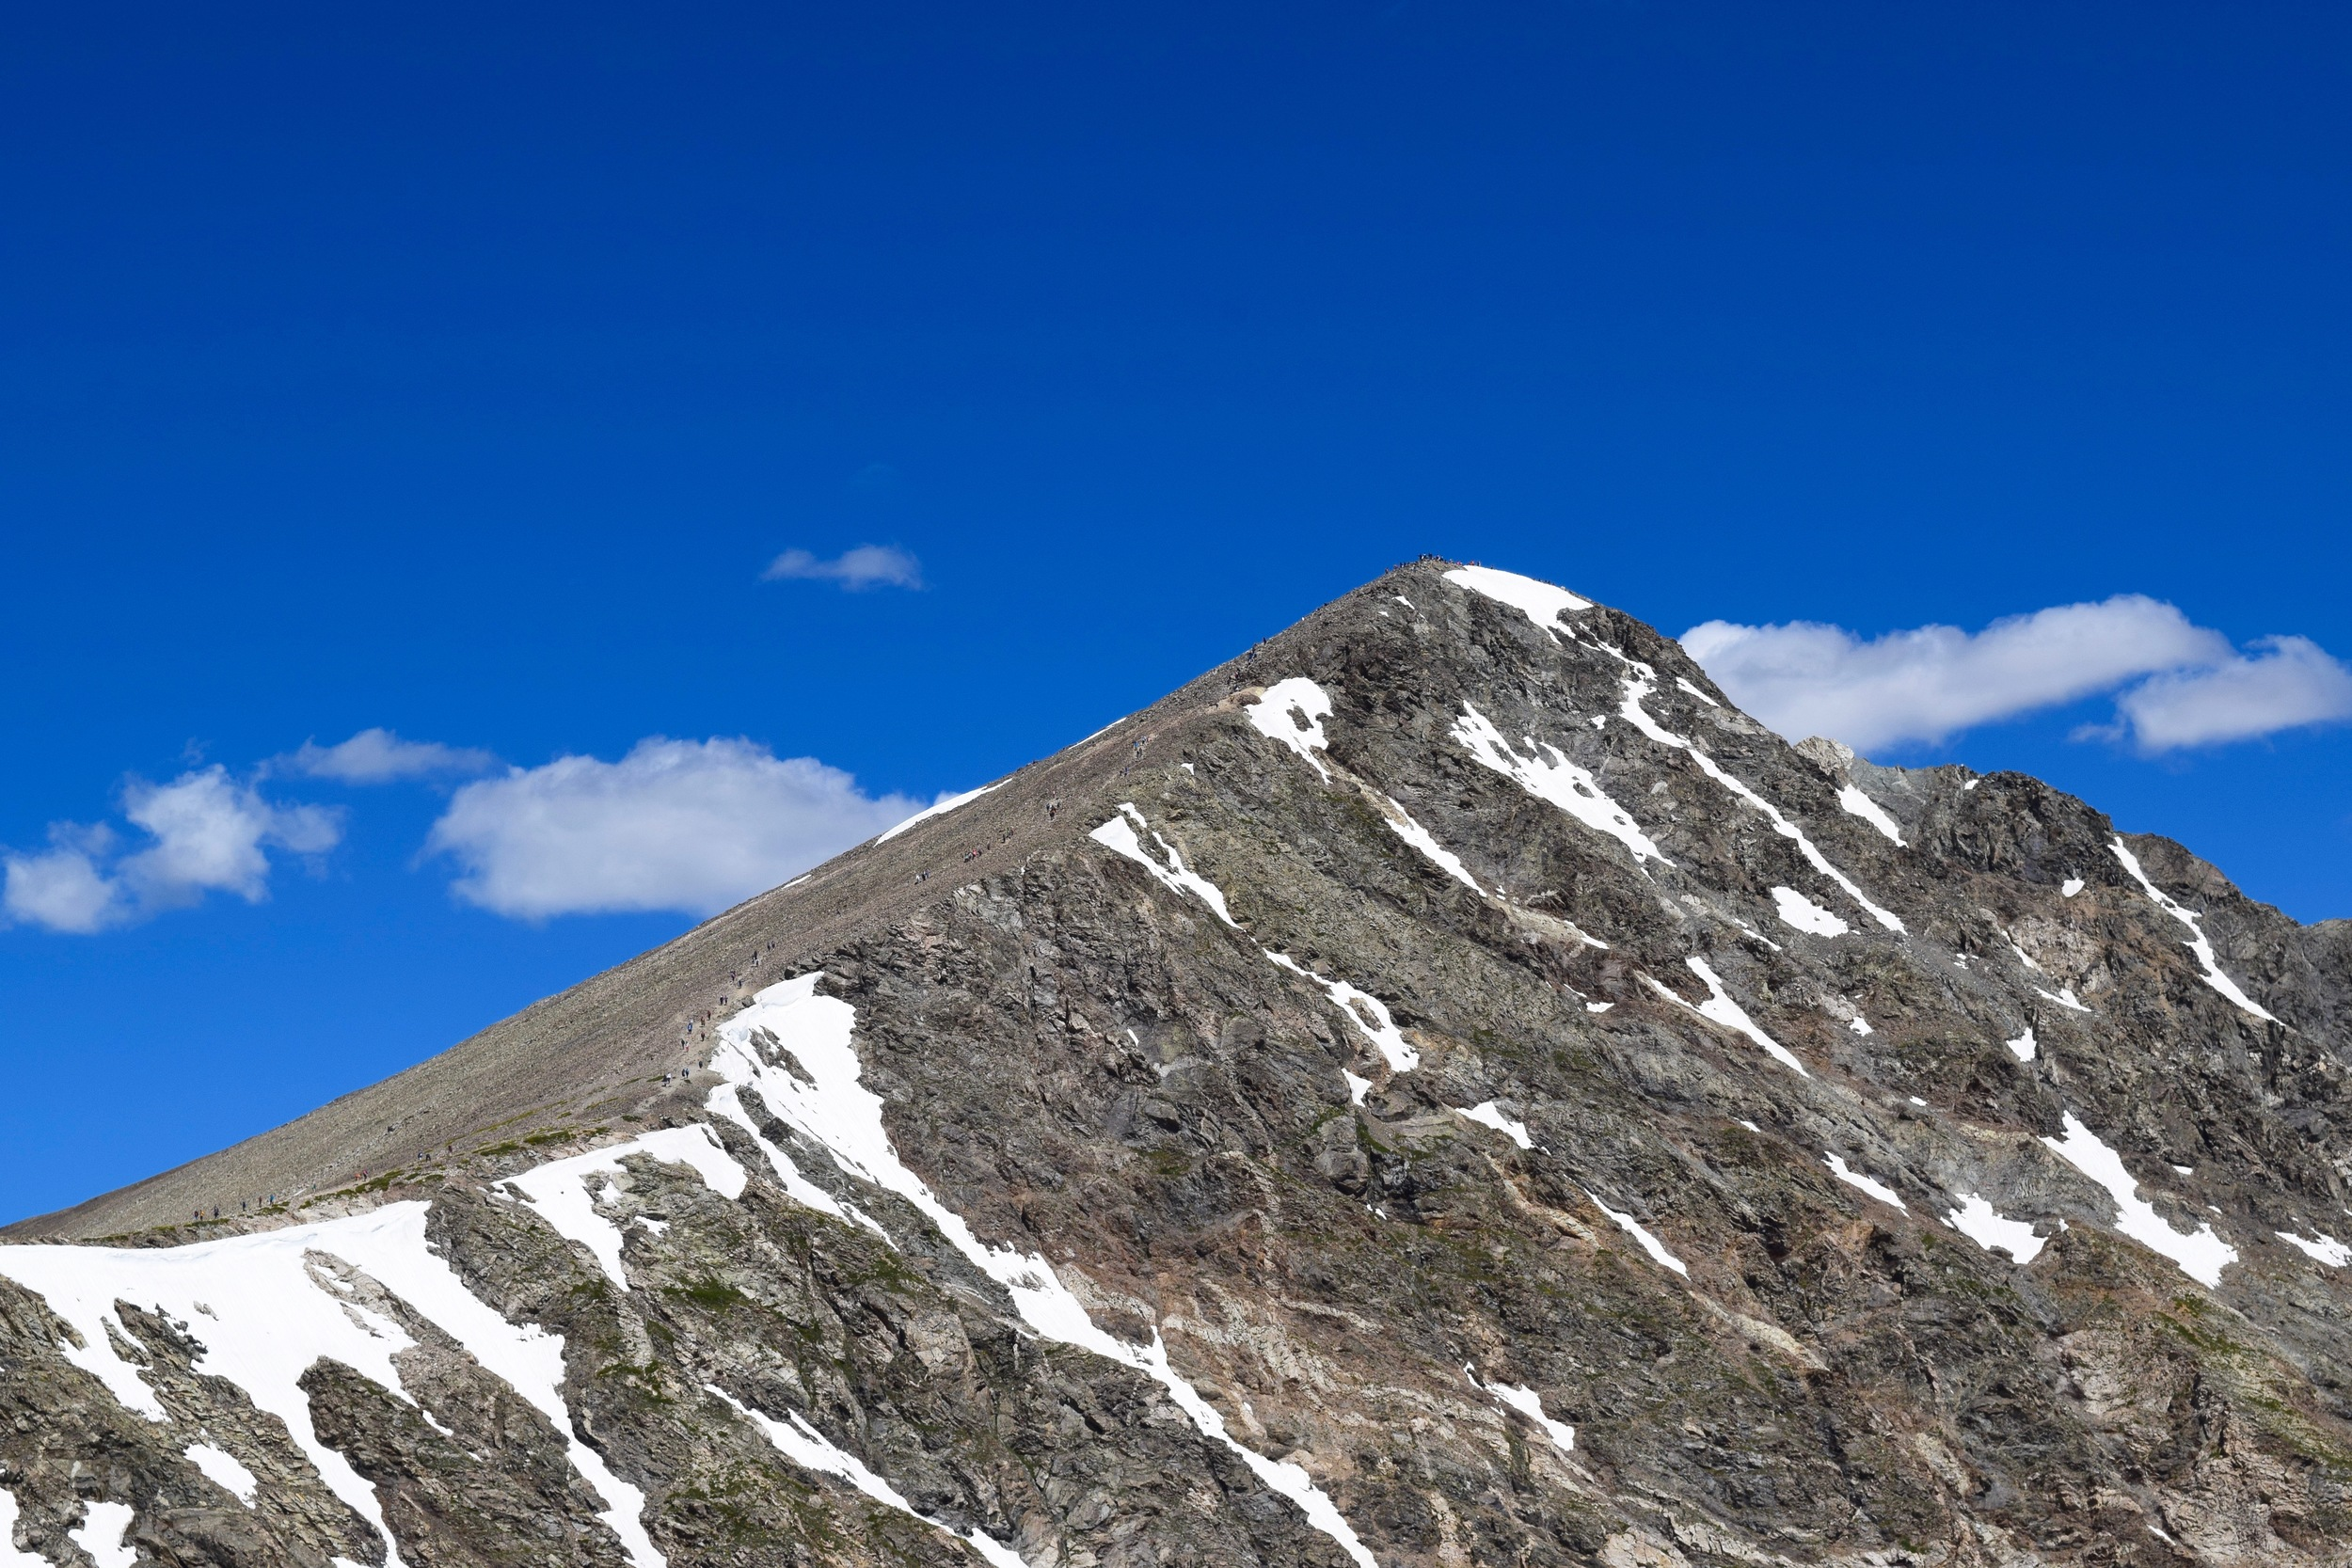 Torreys Peak. You can see little people on the trail and on the summit if you click the picture!